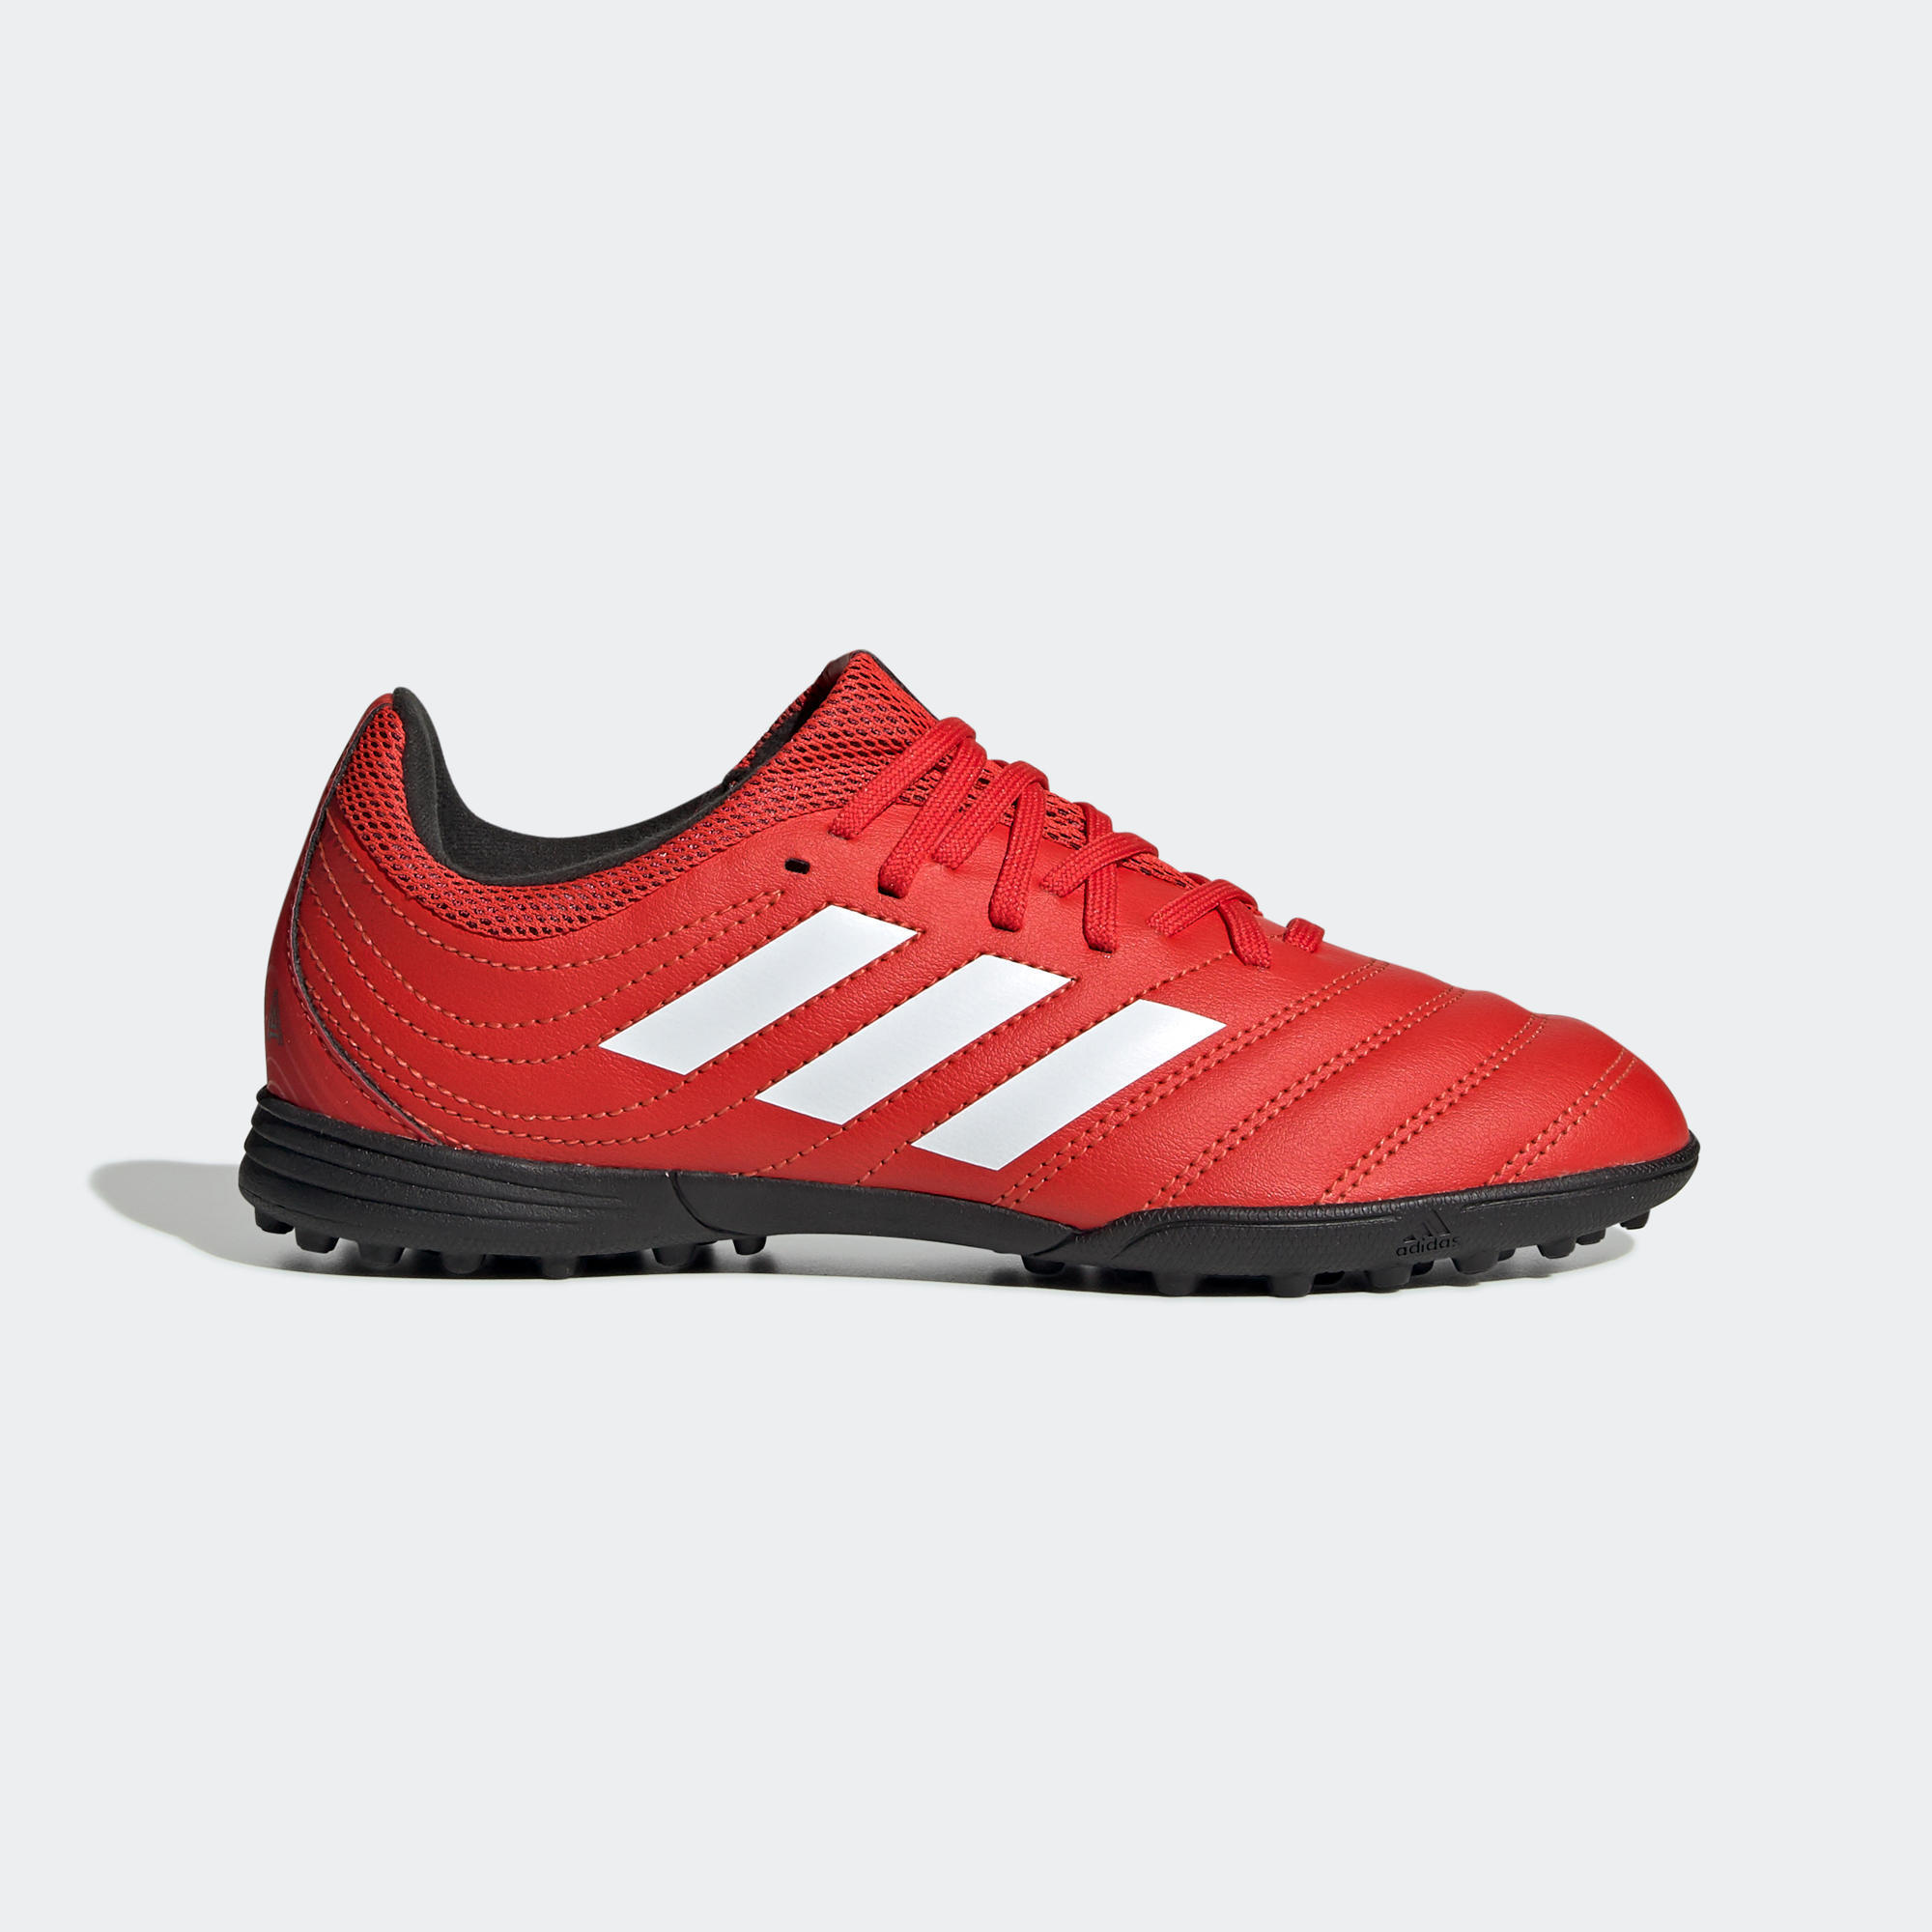 chaussures de football adidas copa